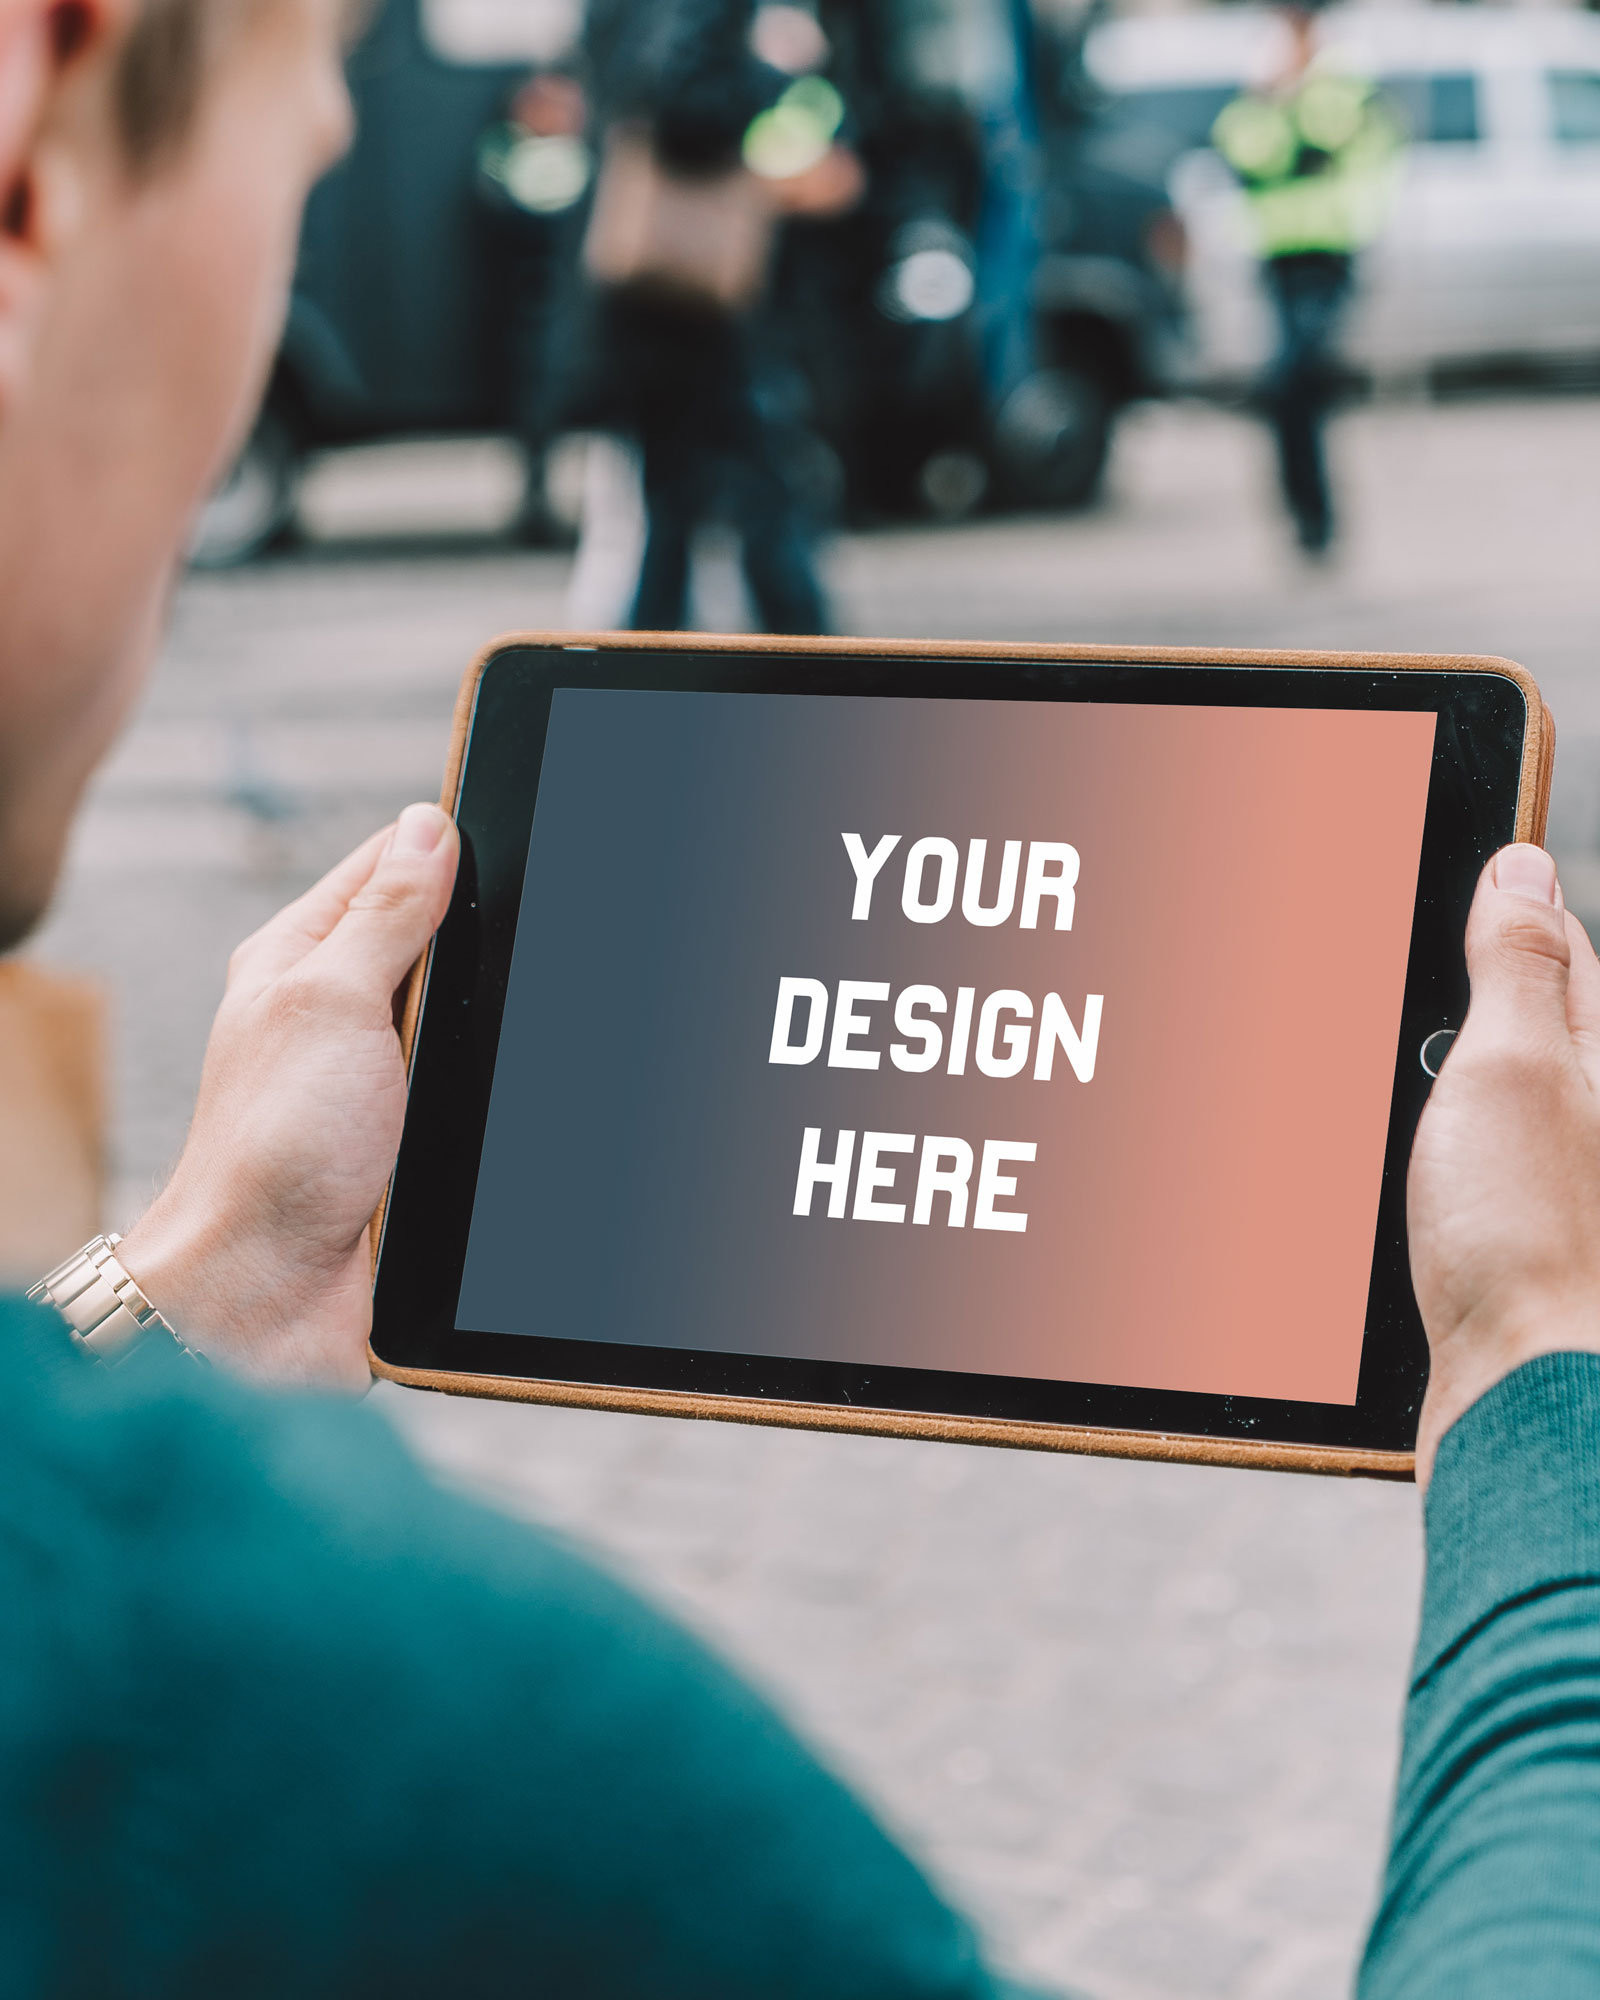 Promote your new ios app with instant ipad mockups in seconds! Ipad In Hands Mockup Free Mockup Download